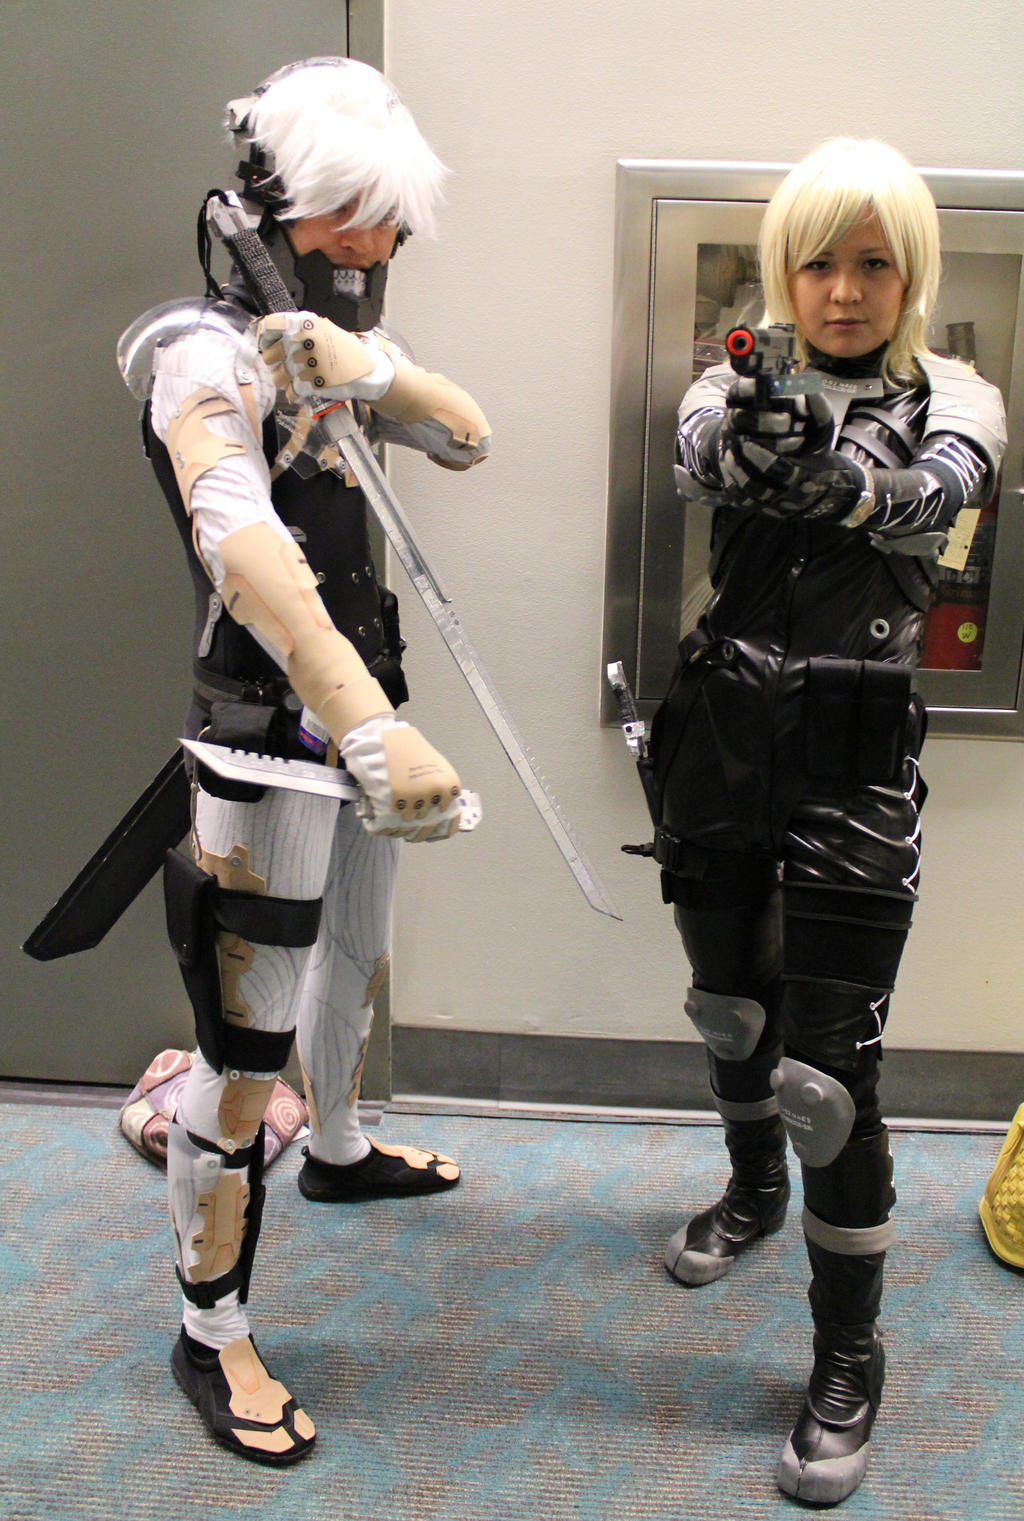 MGS at SDCC '11: Raidens by effektdmentality